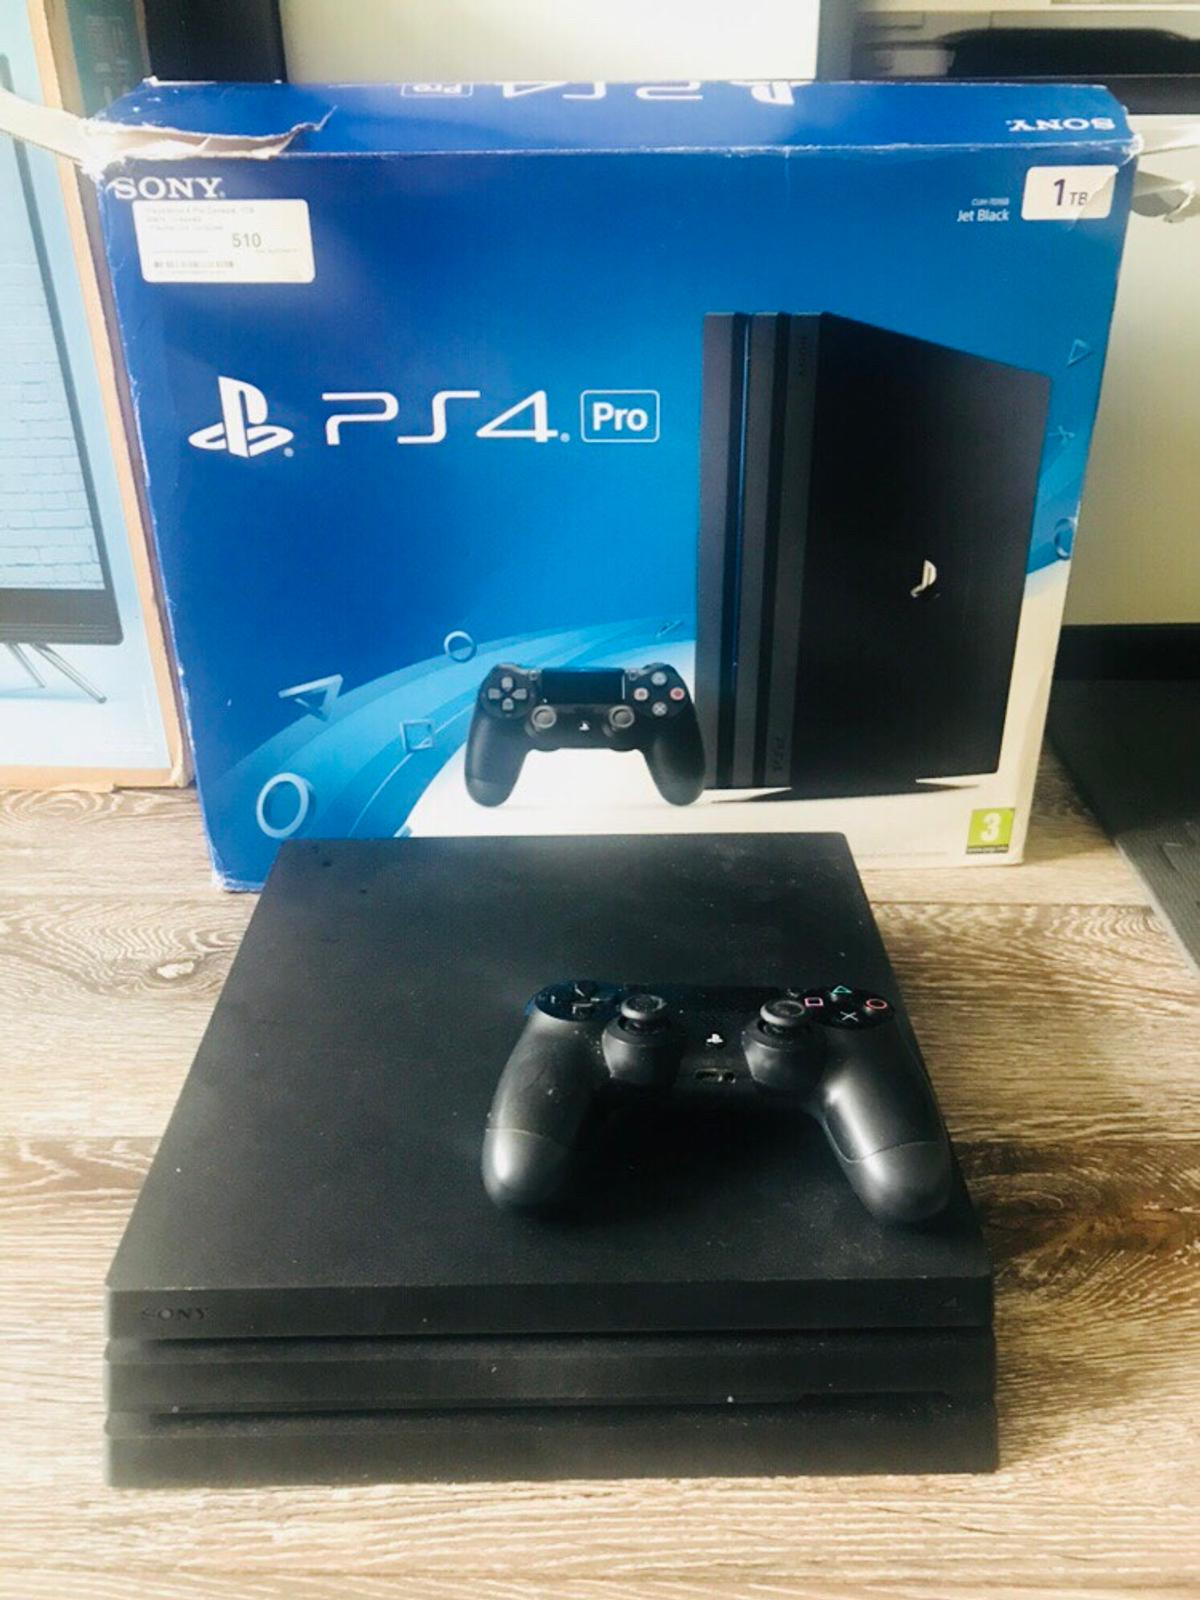 PS4 Pro 1TB with box